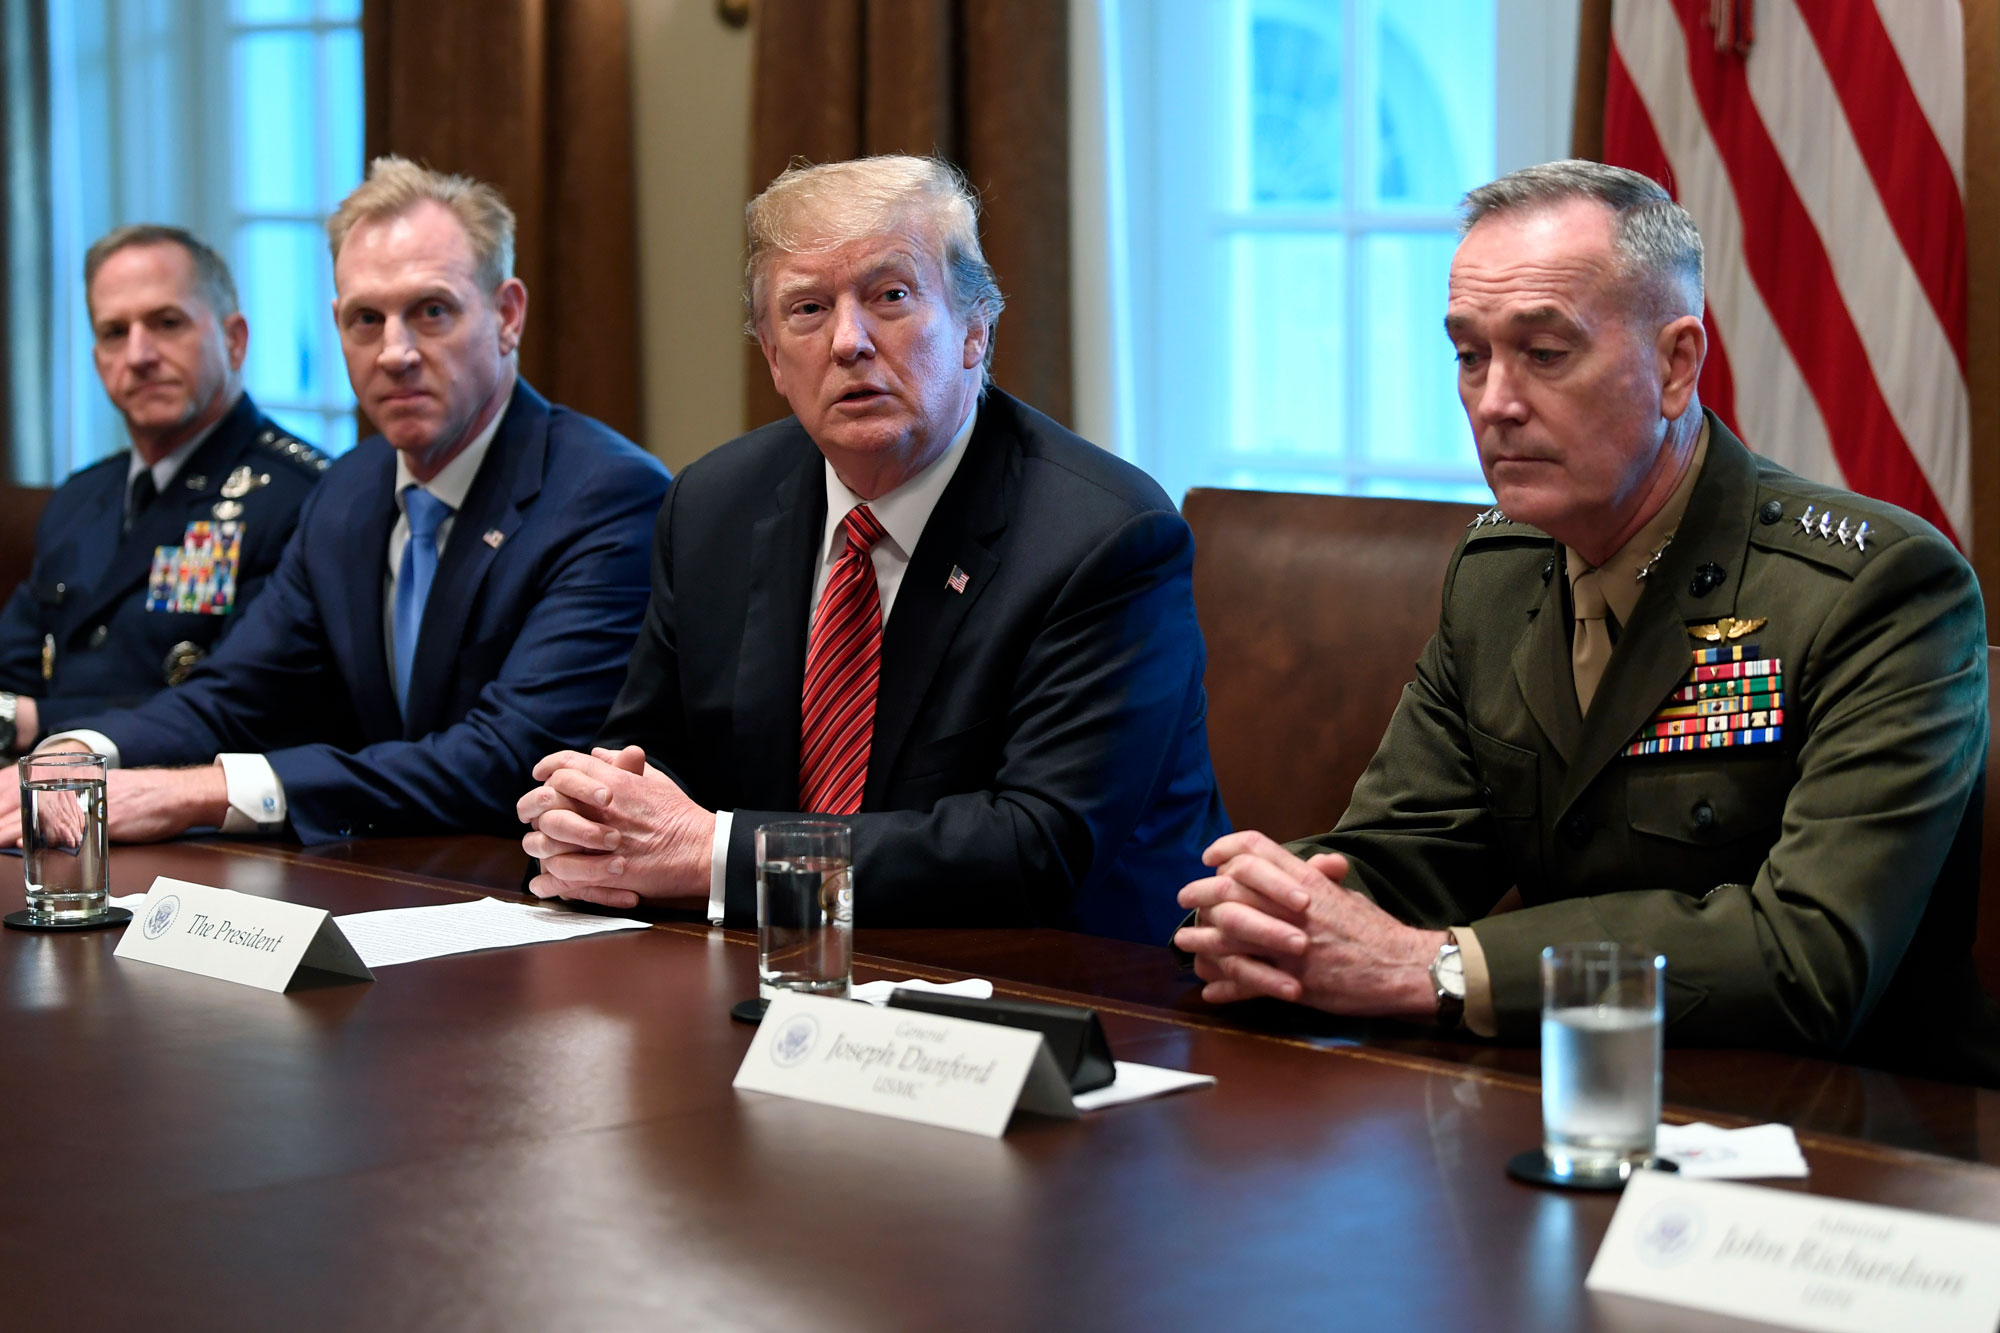 <p>President Donald Trump, second from right, flanked by acting Defense Secretary Patrick Shanahan, second from left, and Chairman of the Joint Chiefs of Staff Gen. Joseph Dunford, right, speaks during a meeting with military leaders in the Cabinet Room of the White House in Washington, Wednesday, April 3, 2019.</p>